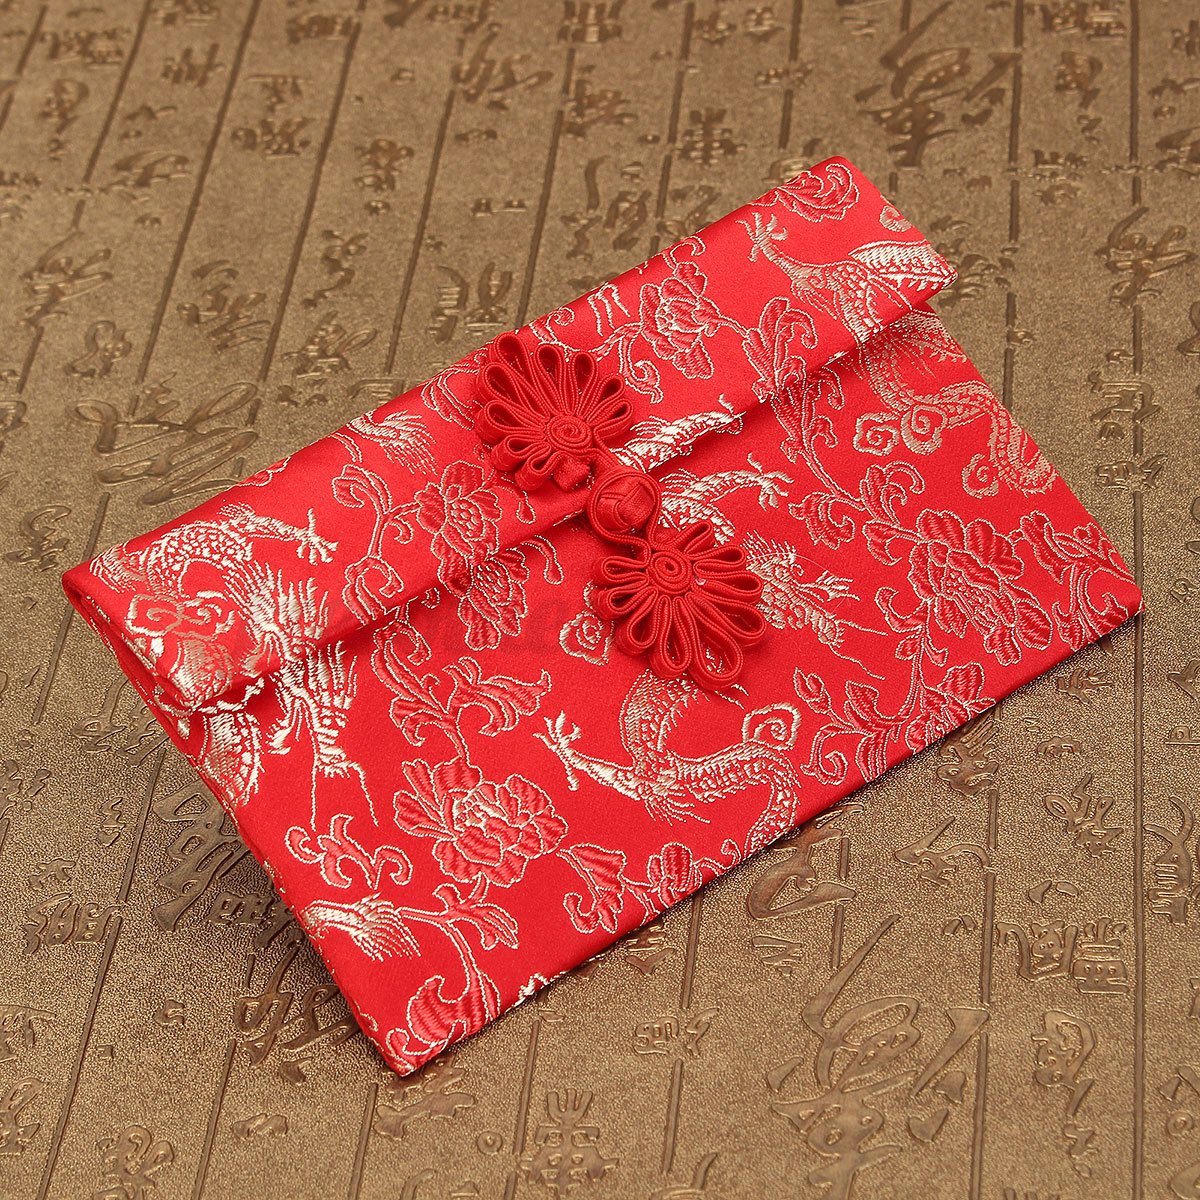 6pcs Chinese Lucky Money Red Packet Envelopes Wedding